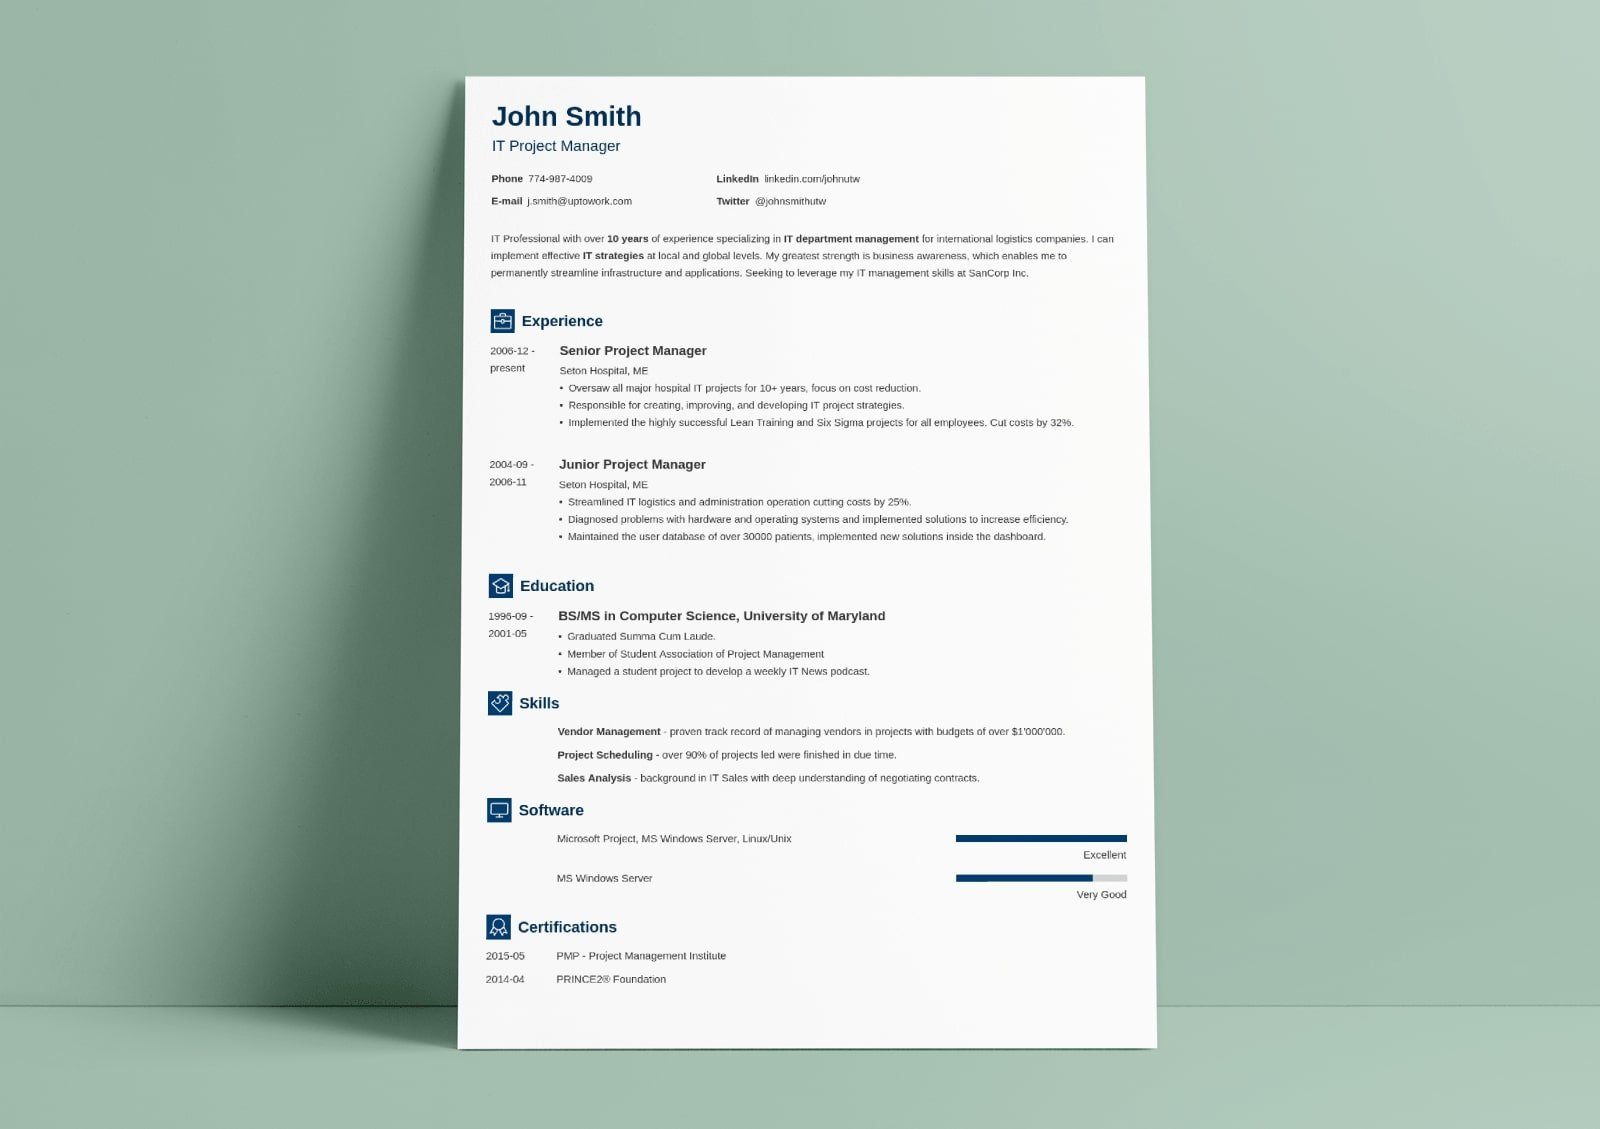 traditional resume template classic examples chronological design newcast fourth grade Resume Chronological Resume Traditional Design